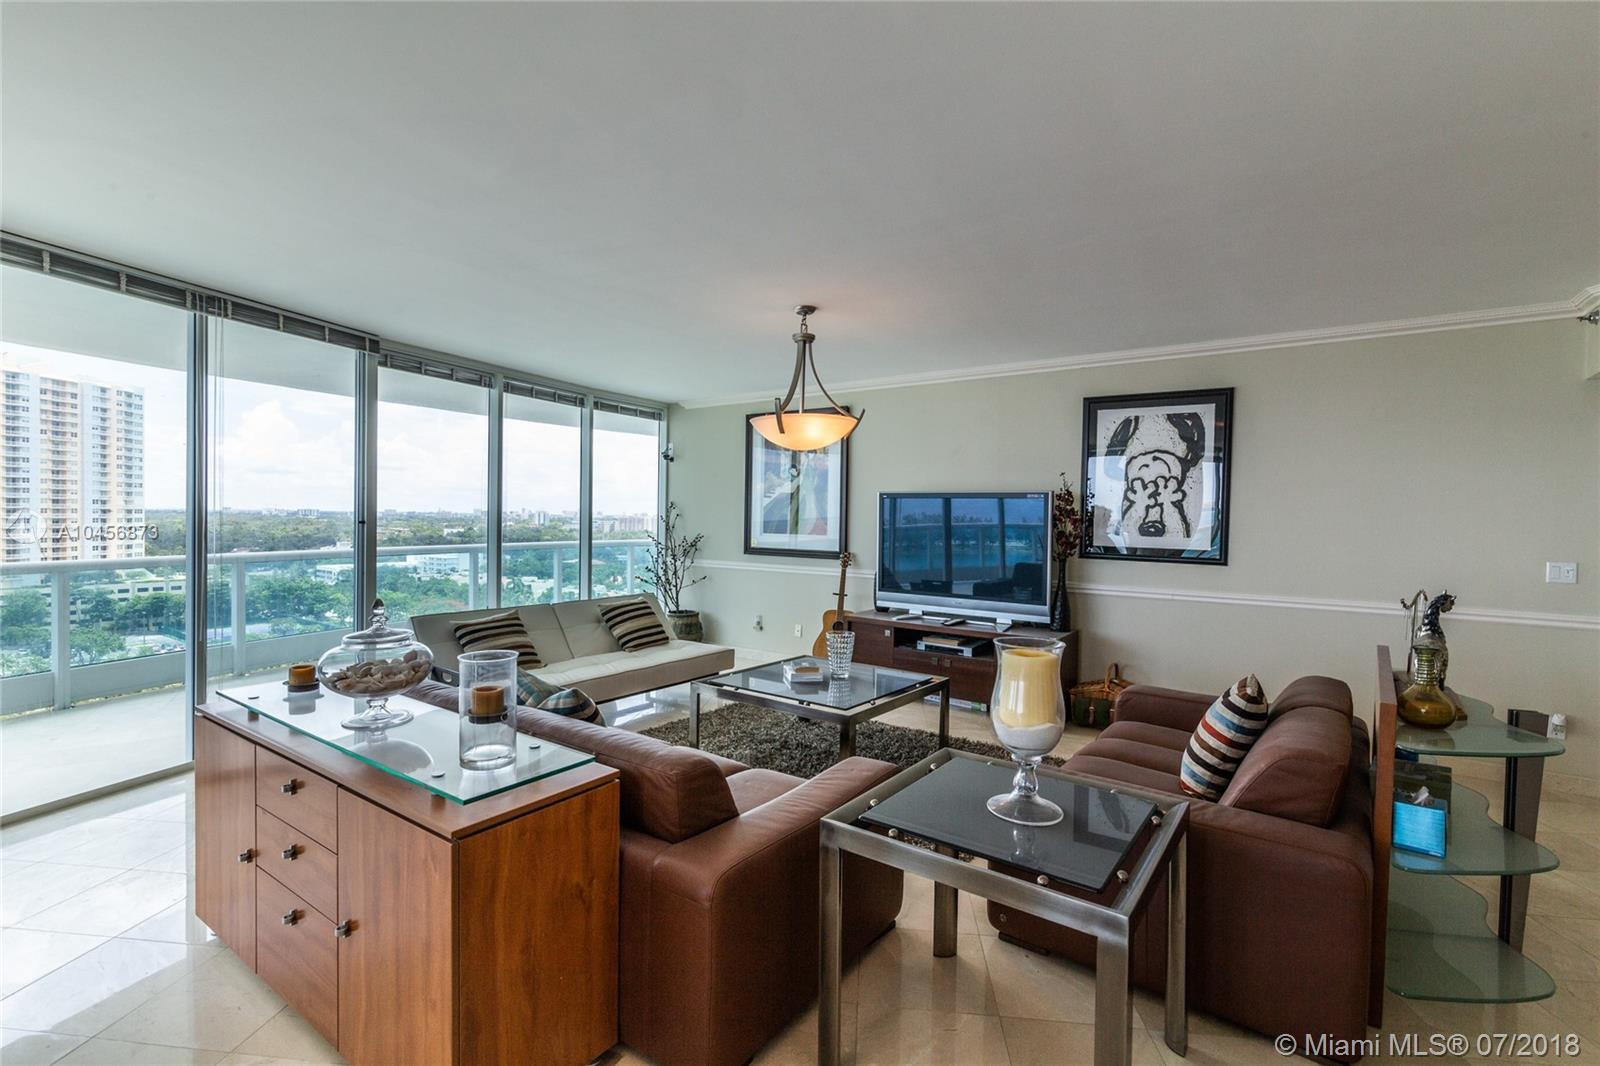 2127 Brickell Avenue, Miami, FL 33129, Bristol Tower Condominium #1702, Brickell, Miami A10456873 image #7